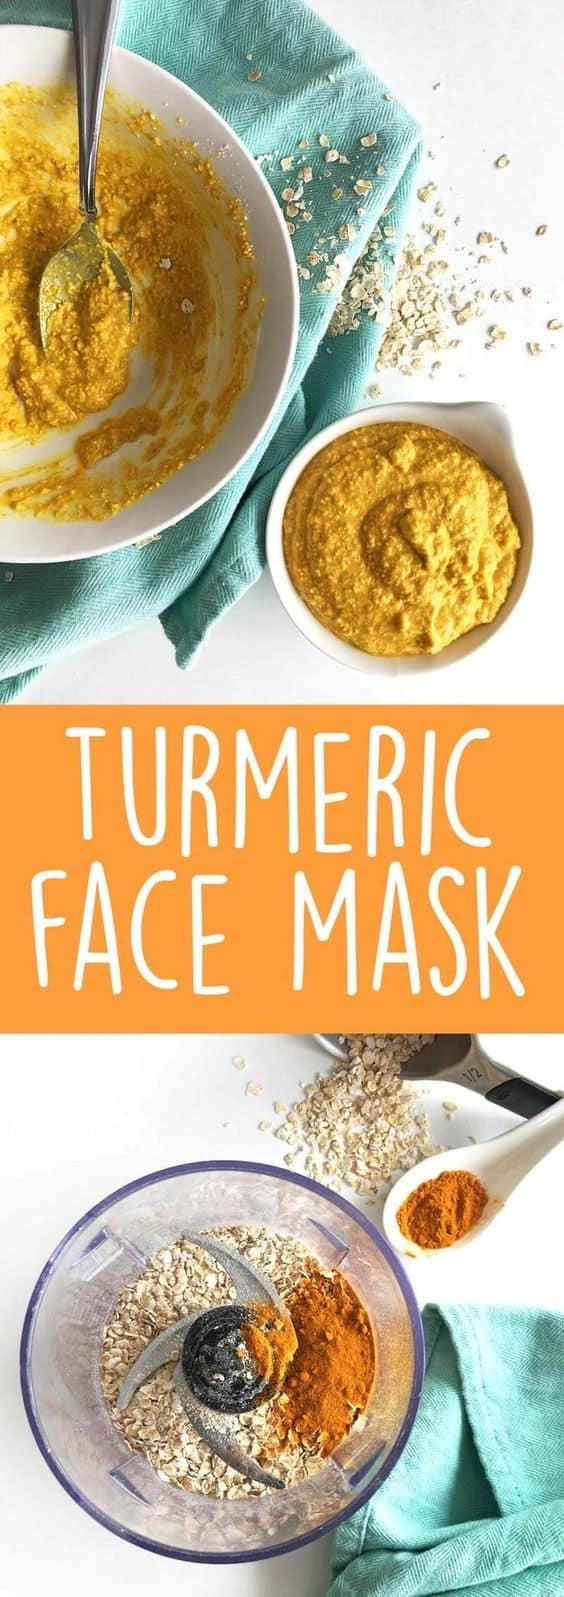 This DIY face mask for wrinkles is not only great for mature skin but for acne-prone skin, too. All you need are oatmeal and turmeric and you'll be greeted with clearer, younger and brighter skin.